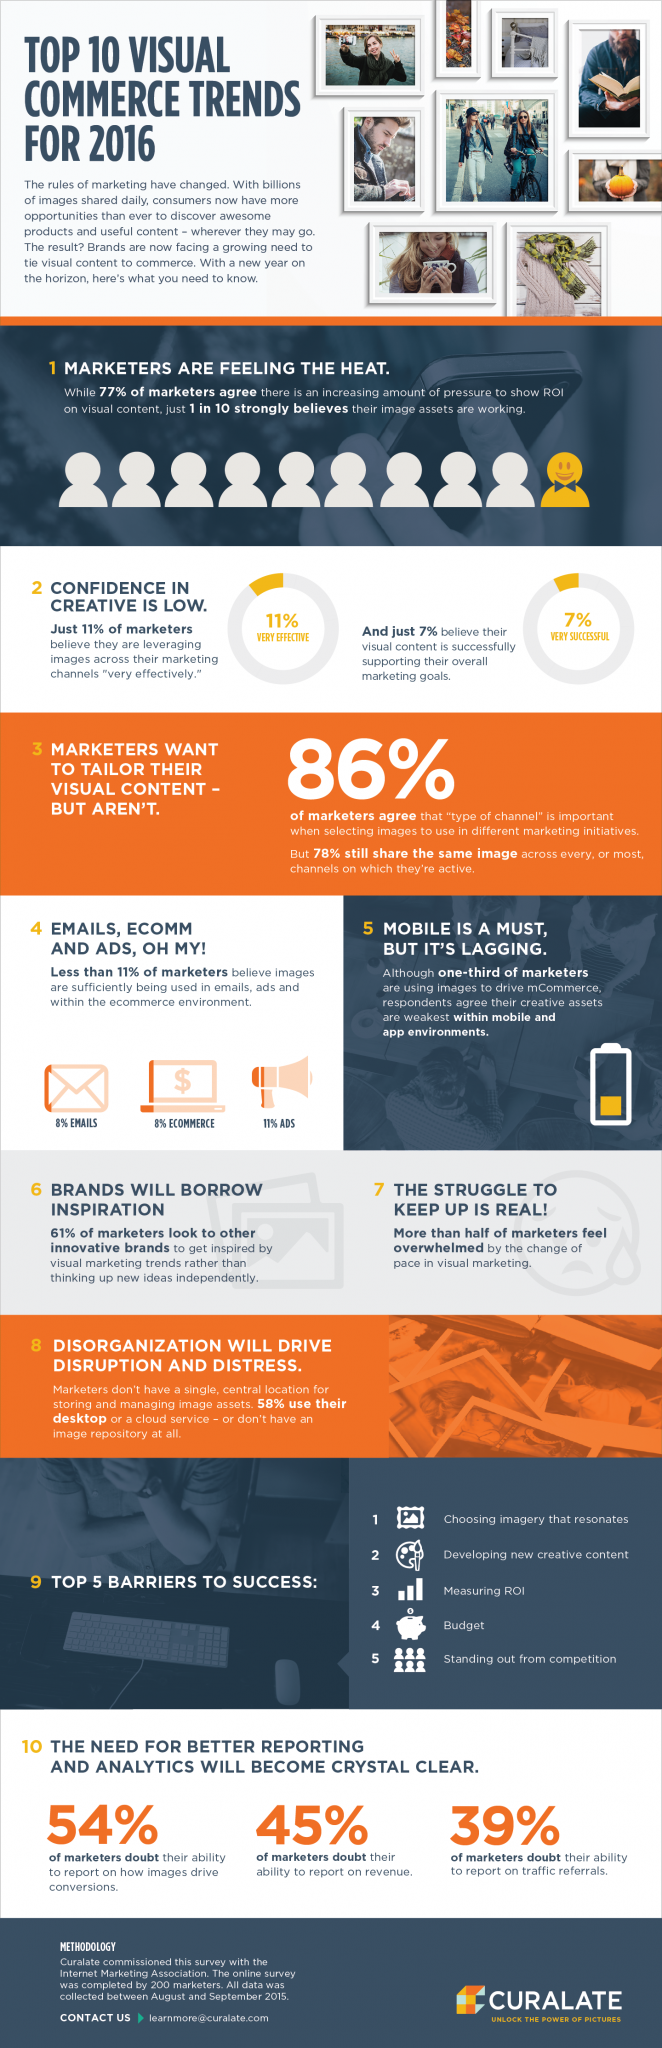 Photo: Visual Marketing Trends; Source: Curalate